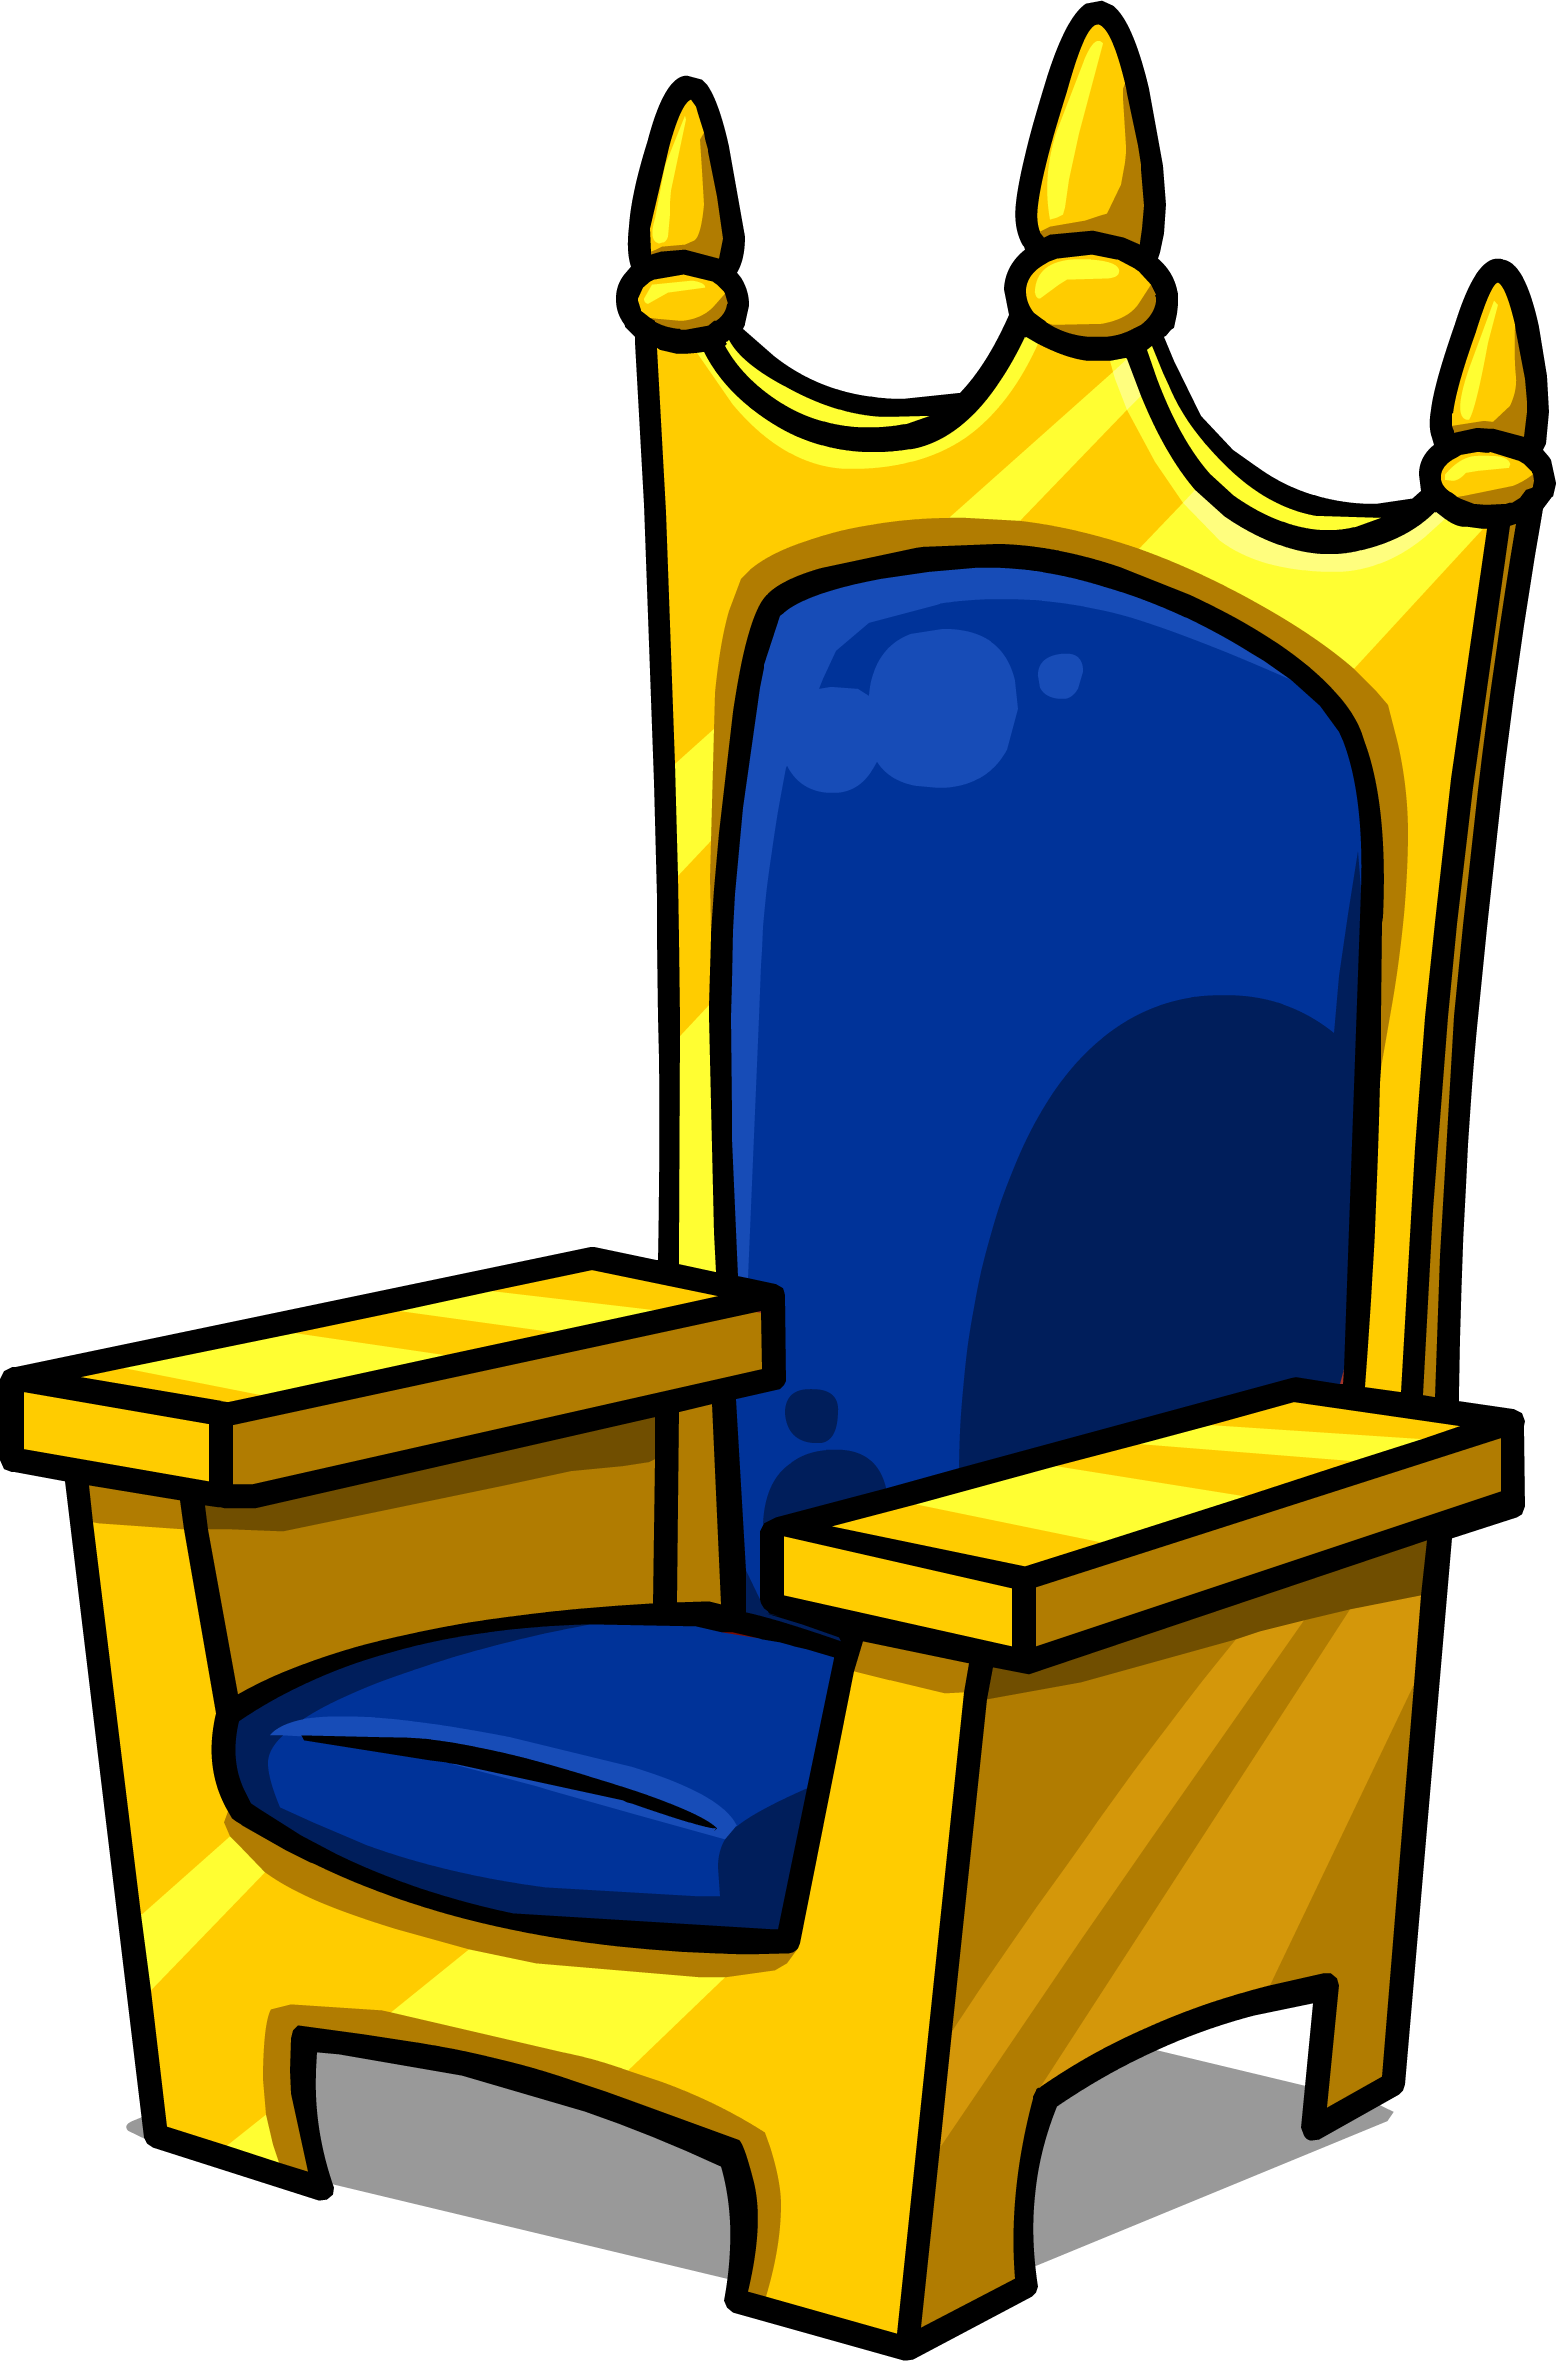 Clipart throne 1 » Clipart Station.